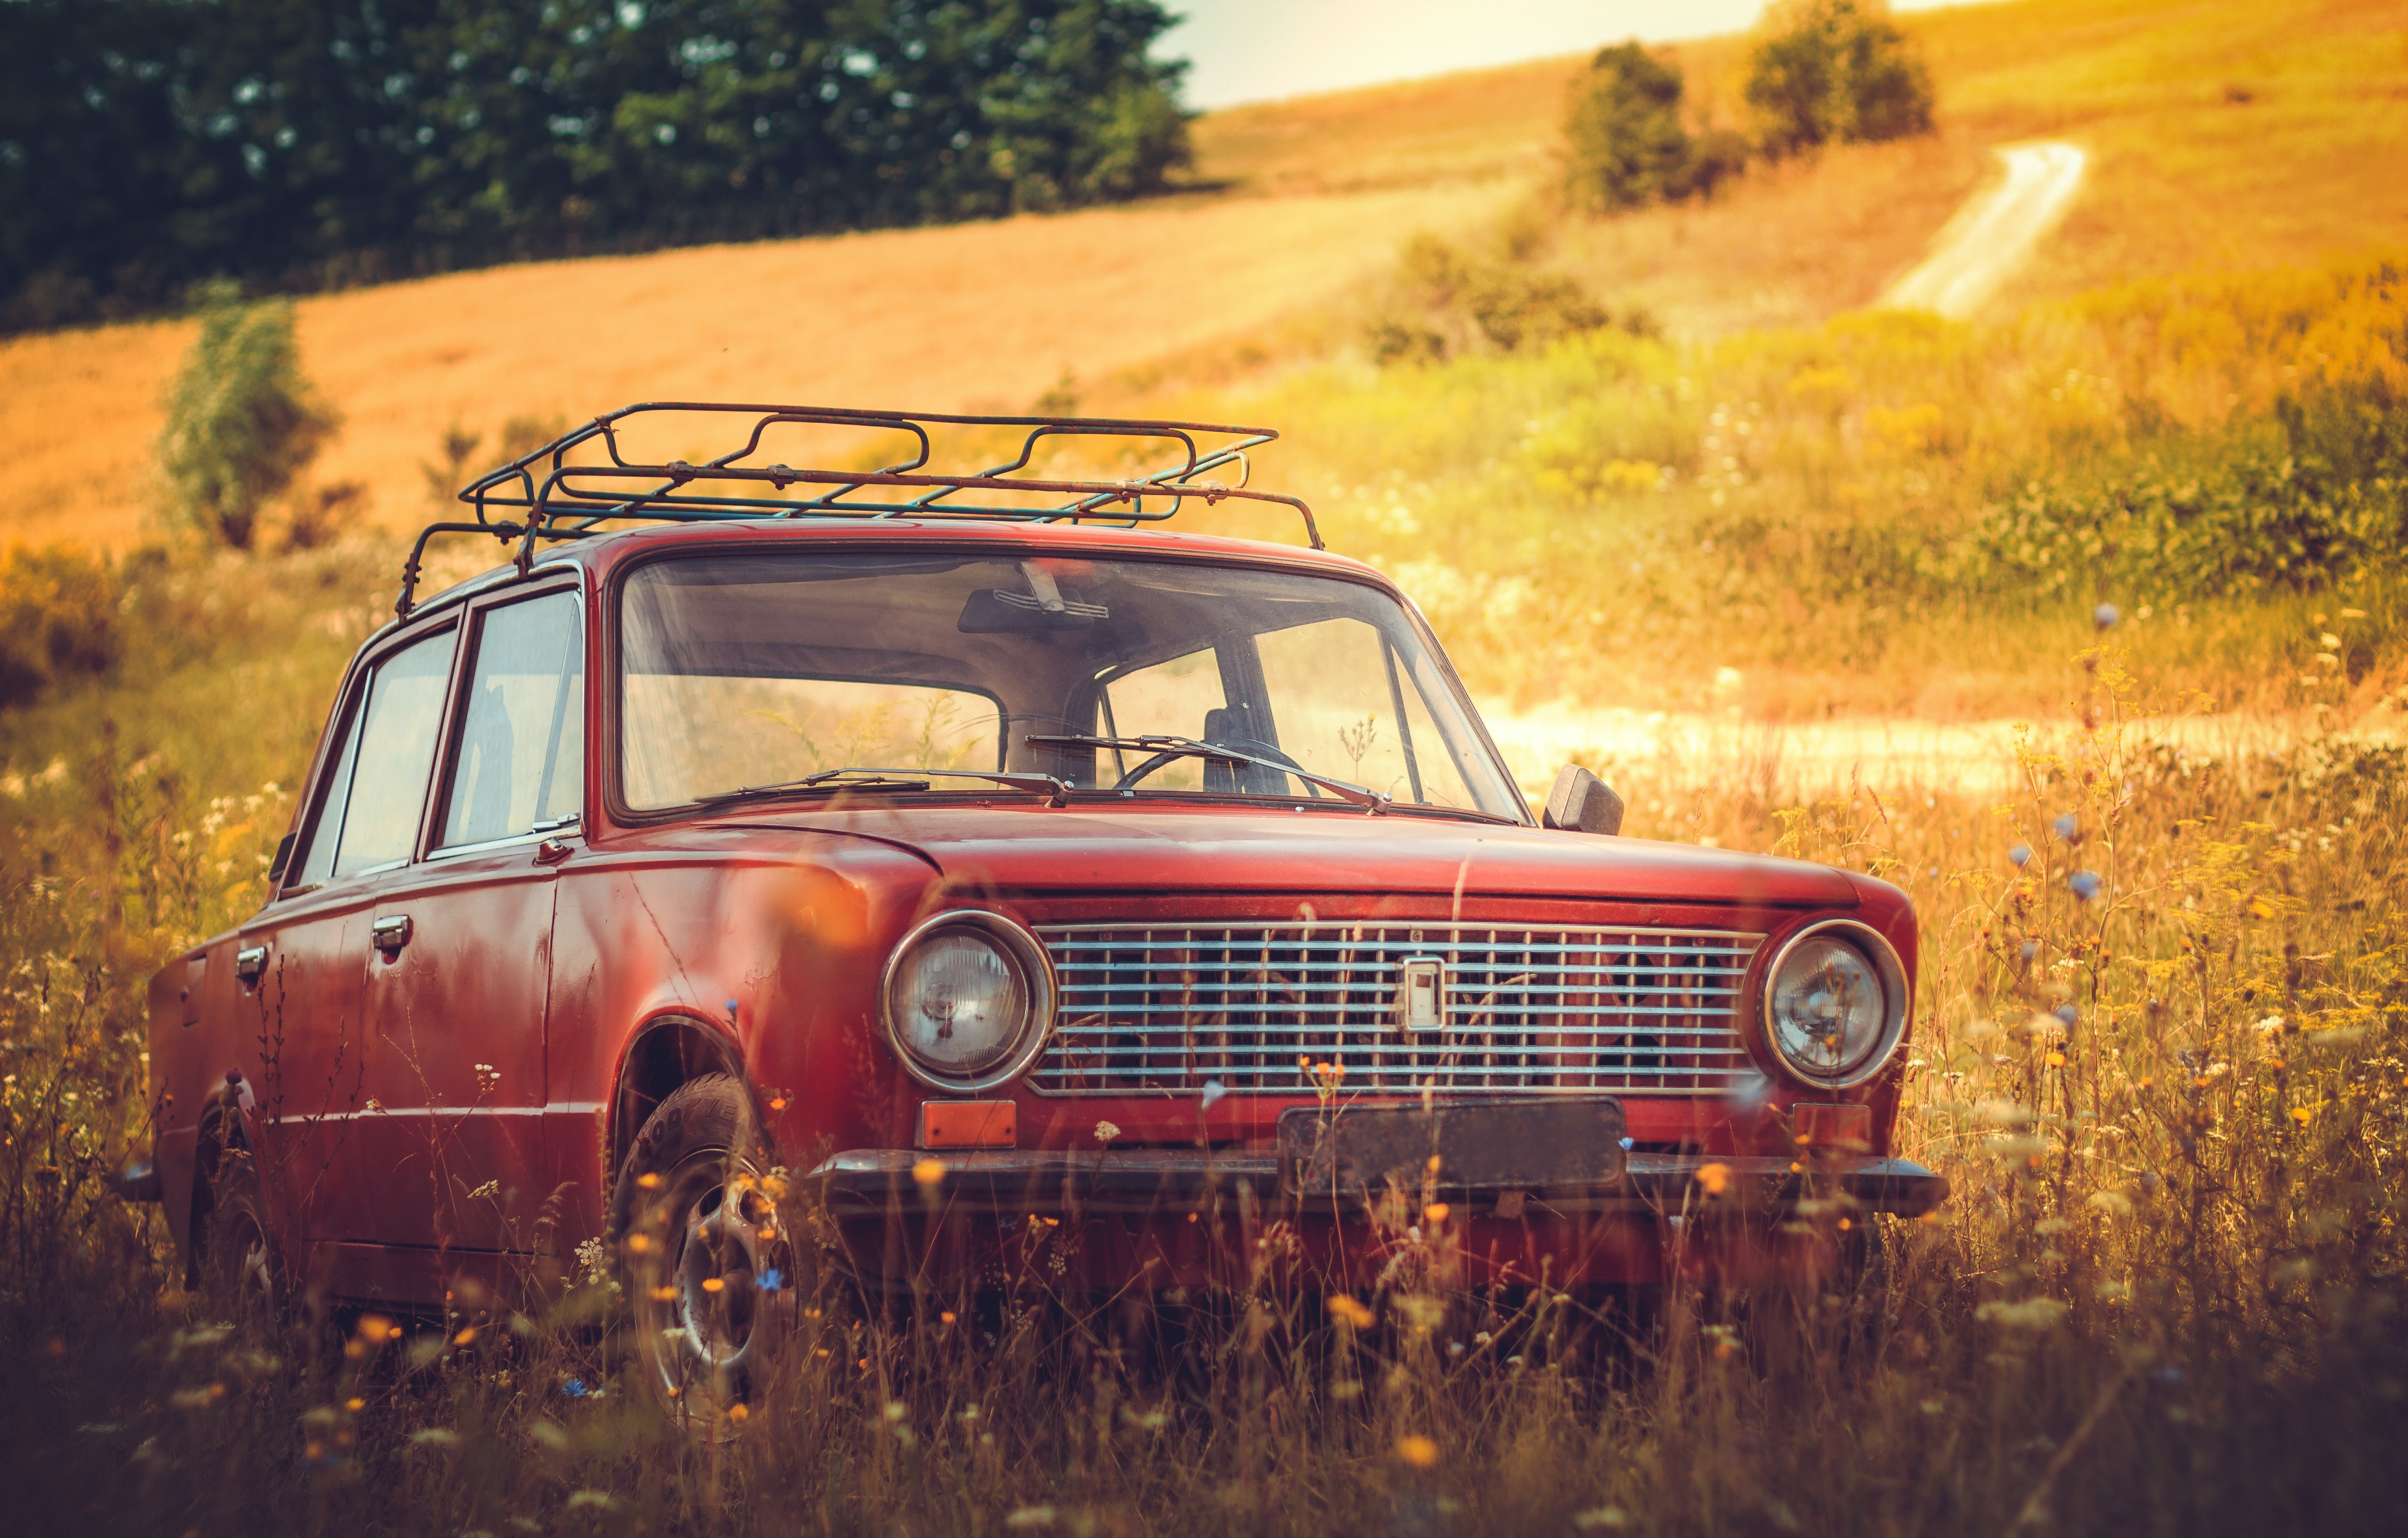 classic red car on grass field